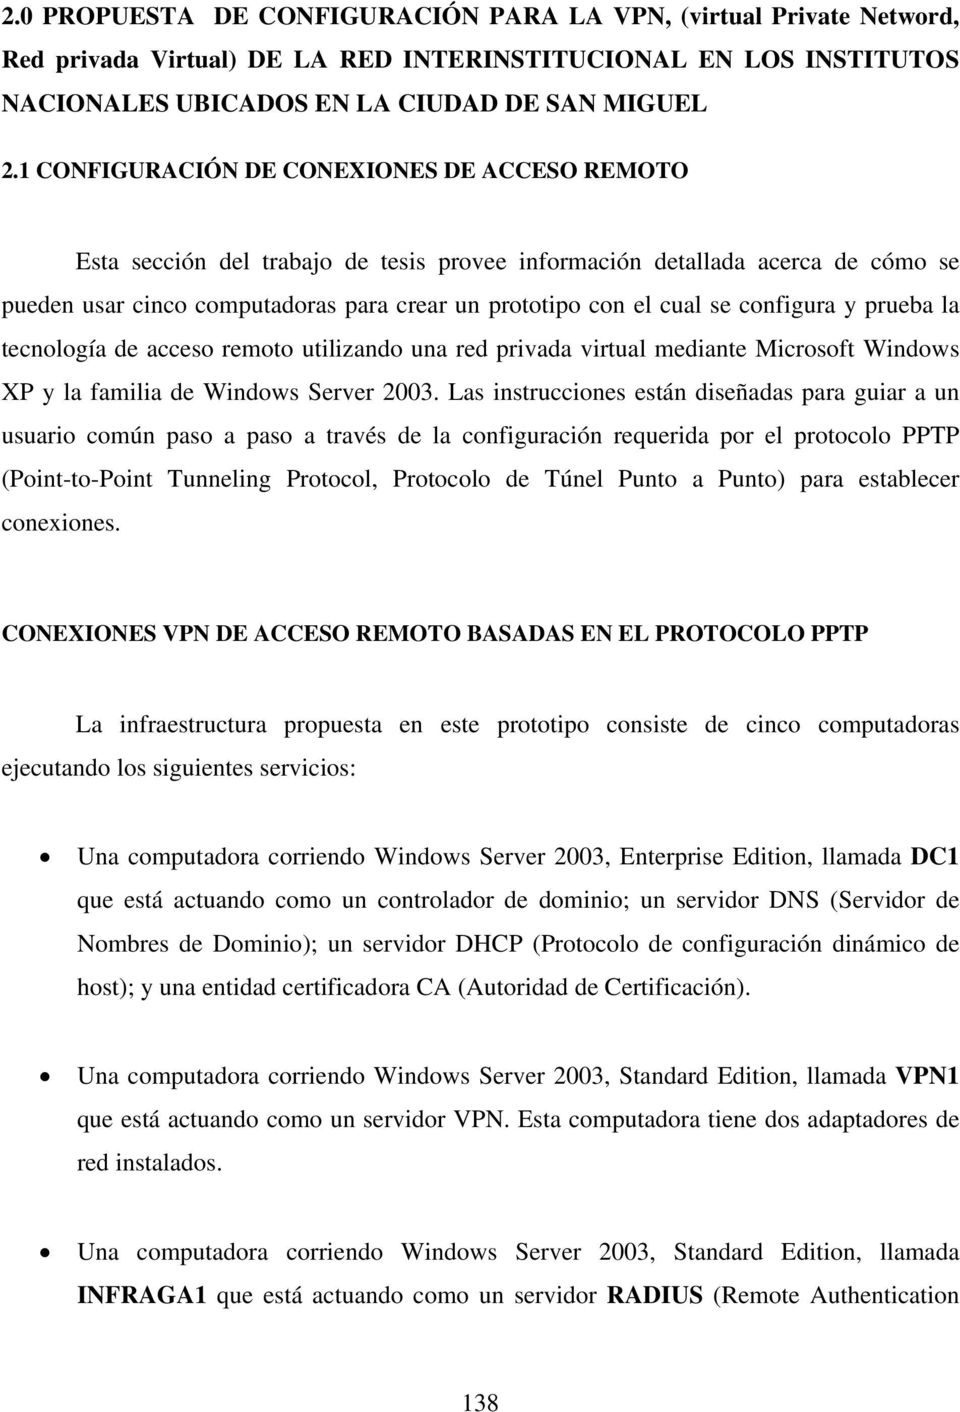 configura y prueba la tecnología de acceso remoto utilizando una red privada virtual mediante Microsoft Windows XP y la familia de Windows Server 2003.